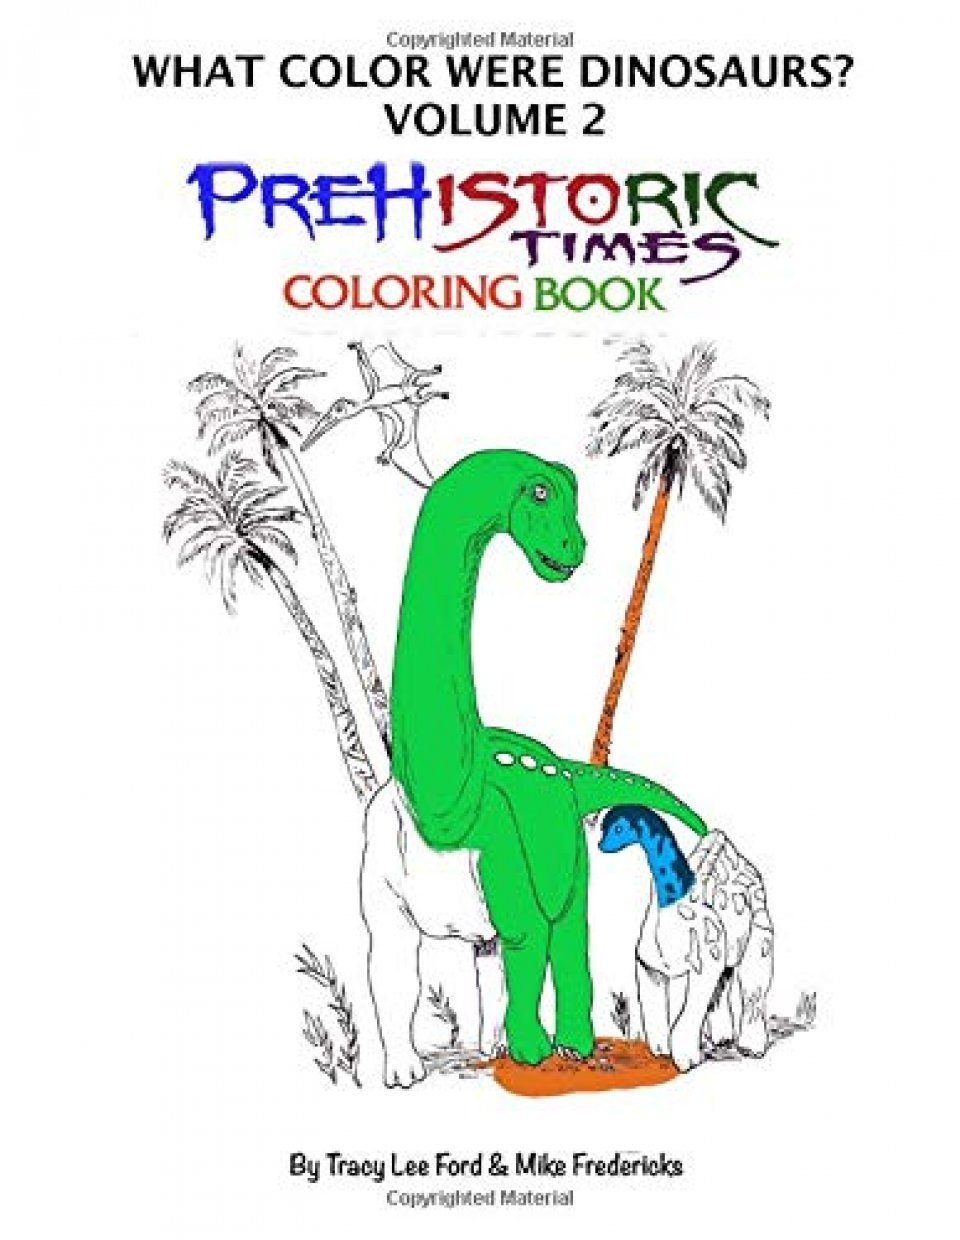 What Color Were Dinosaurs?, Volume 2